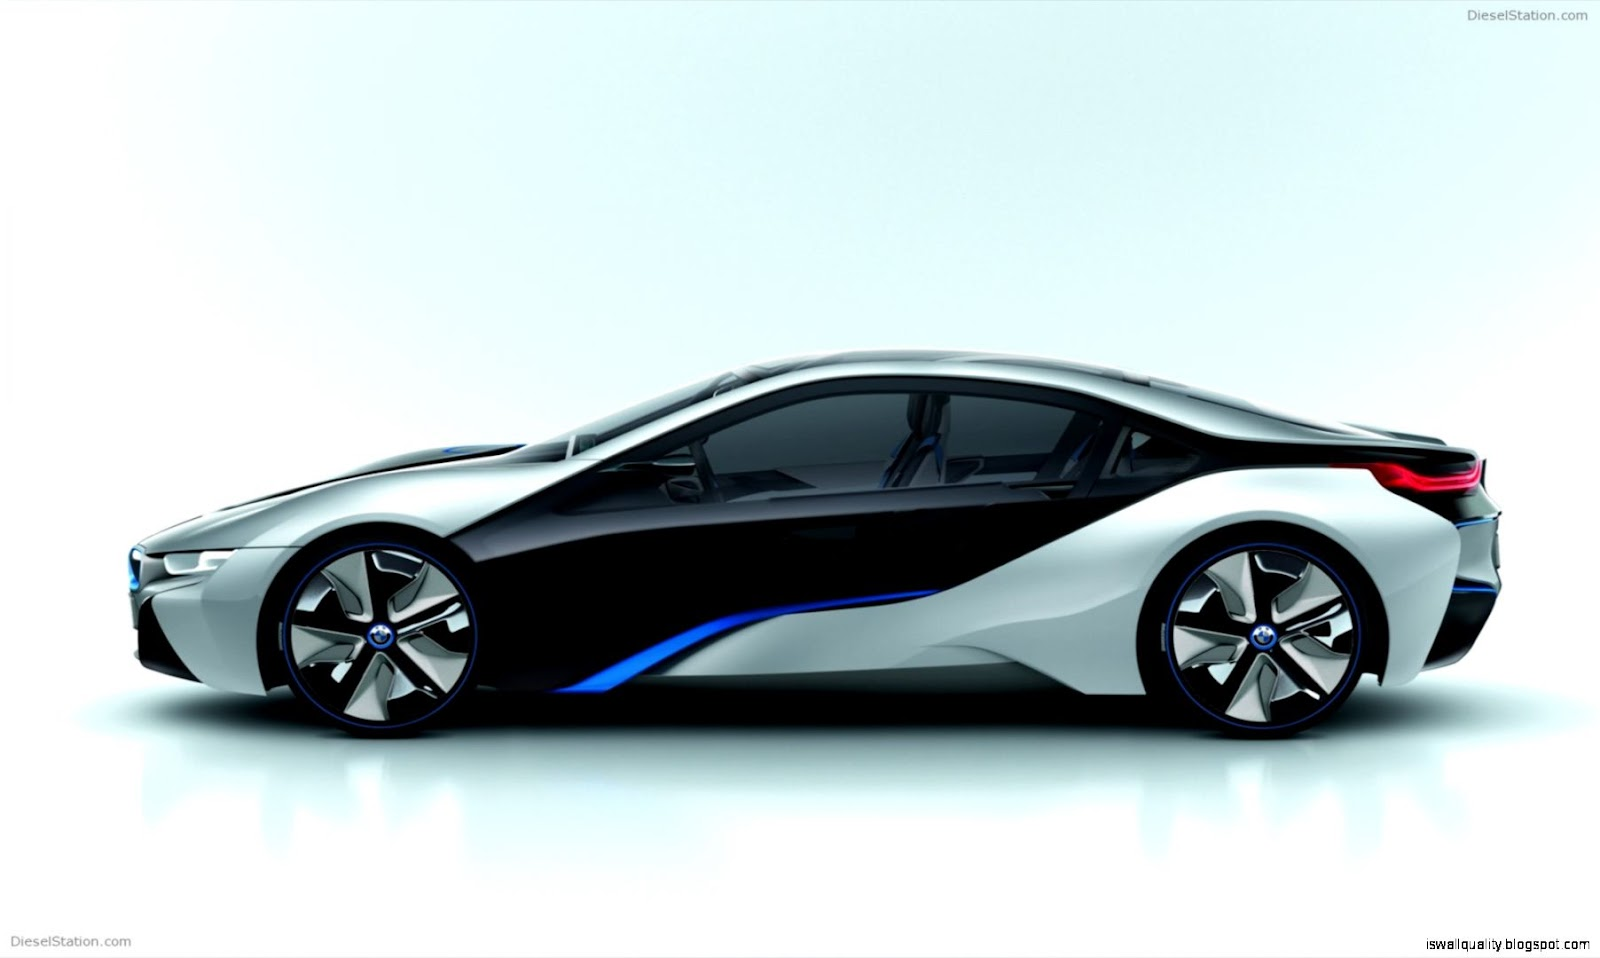 Bmw I8 Concept Full Hd Wallpapers Quality